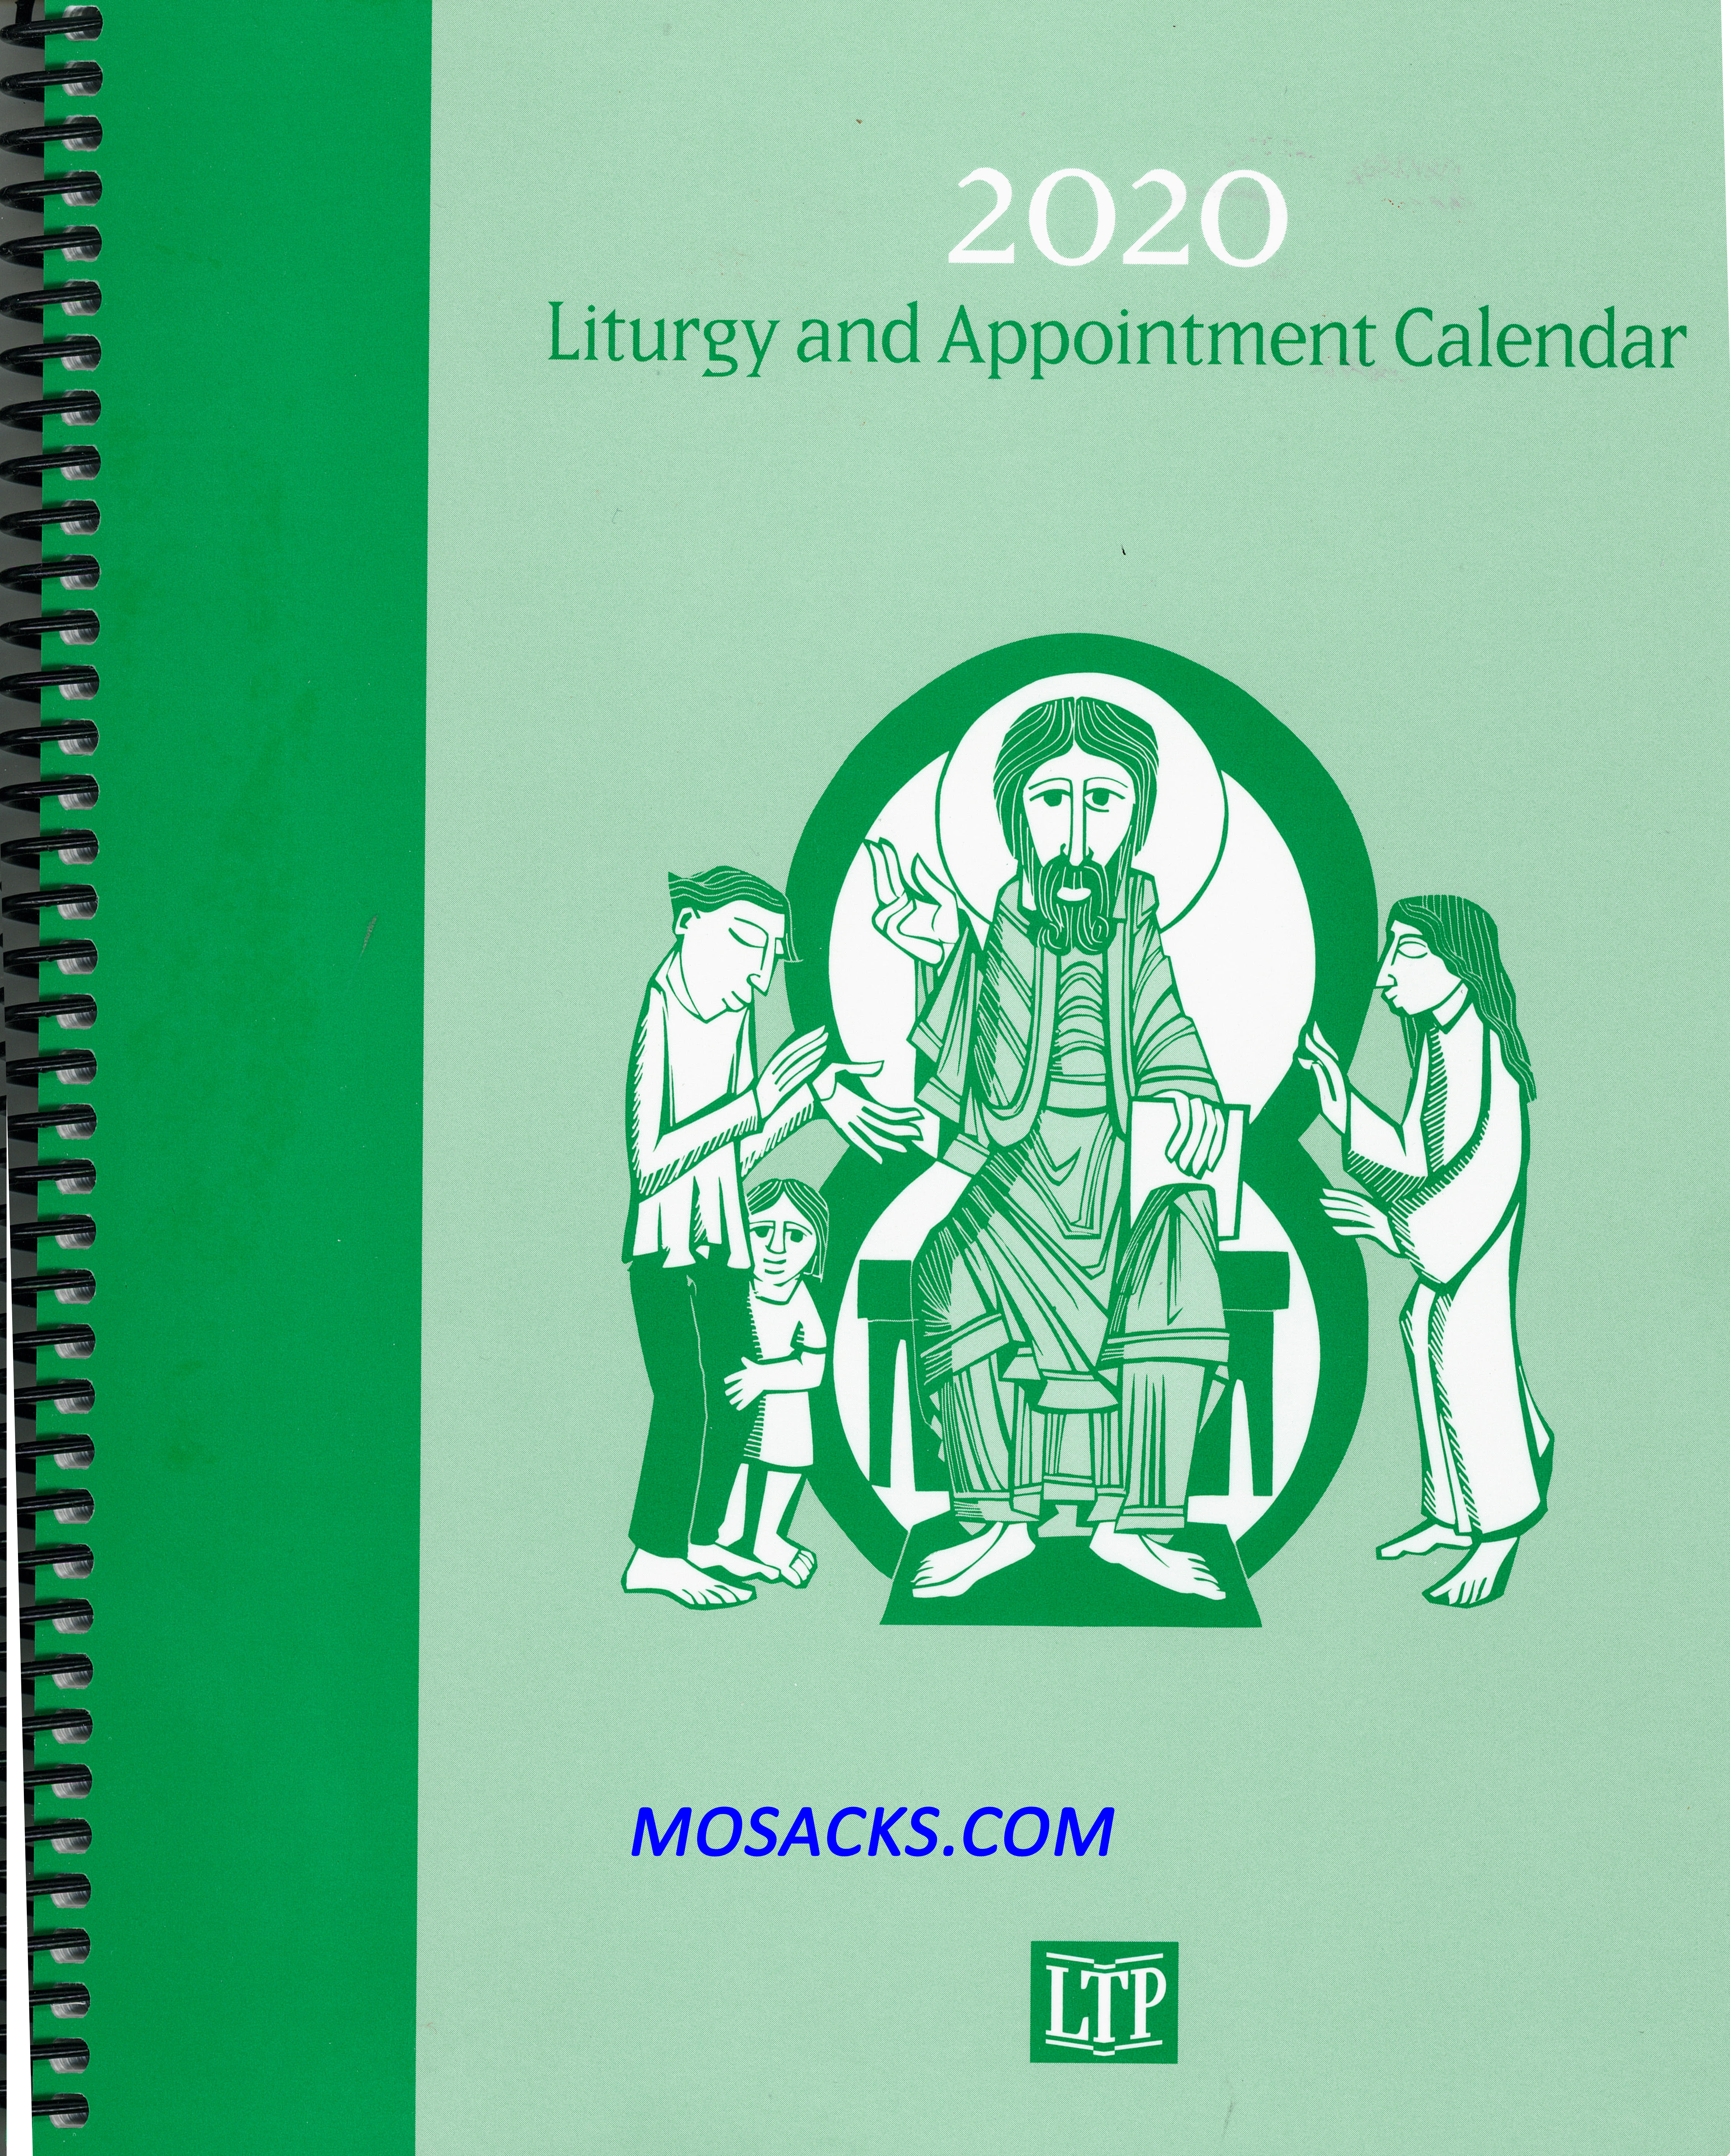 2020 Liturgy and Appointment Calendar LAC20